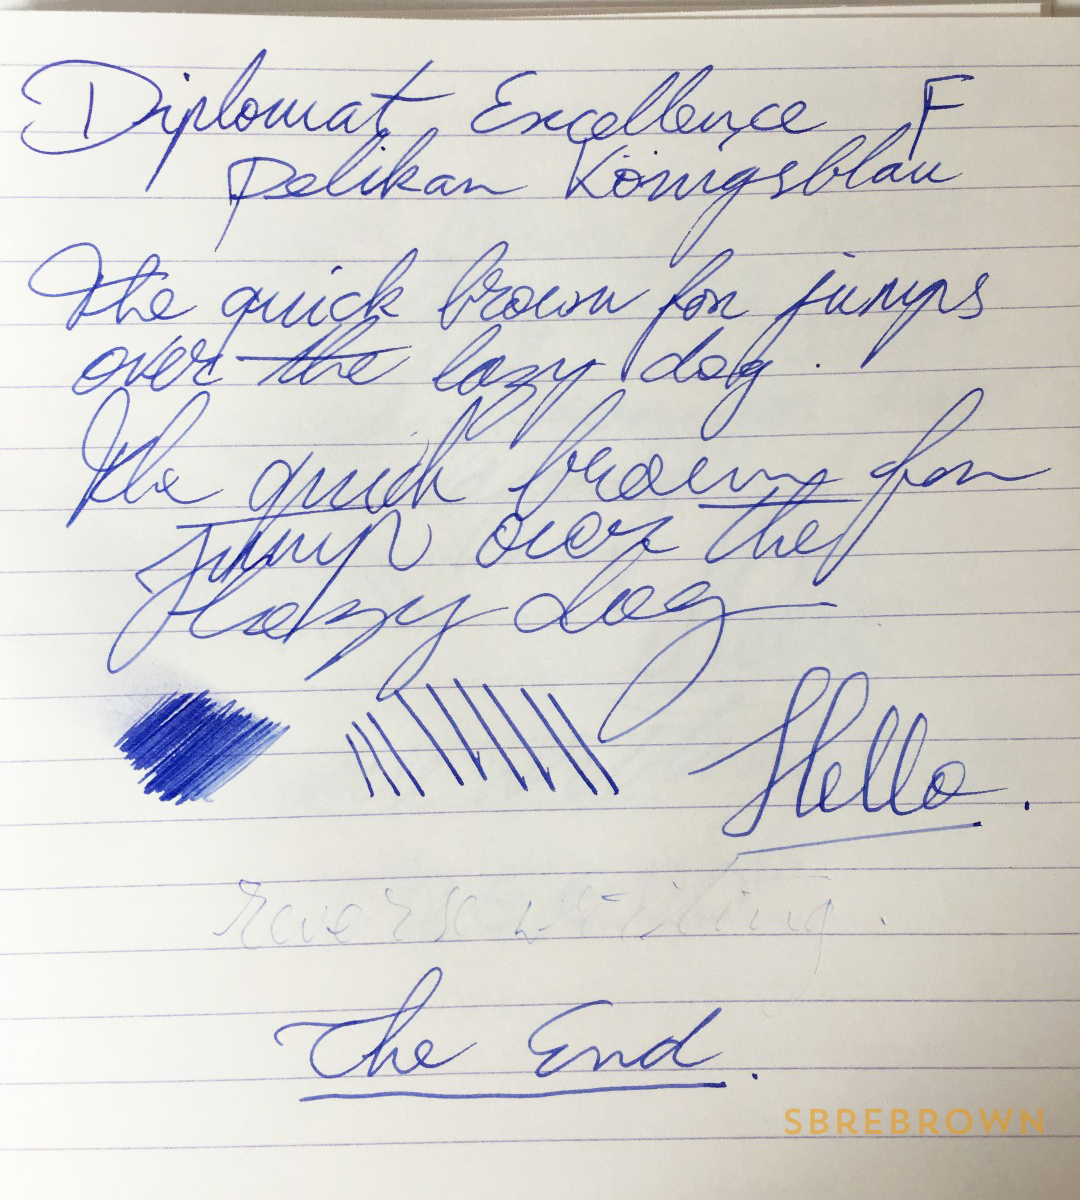 Diplomat Excellence A Evergreen Fountain Pen Review & Giveaway (6)